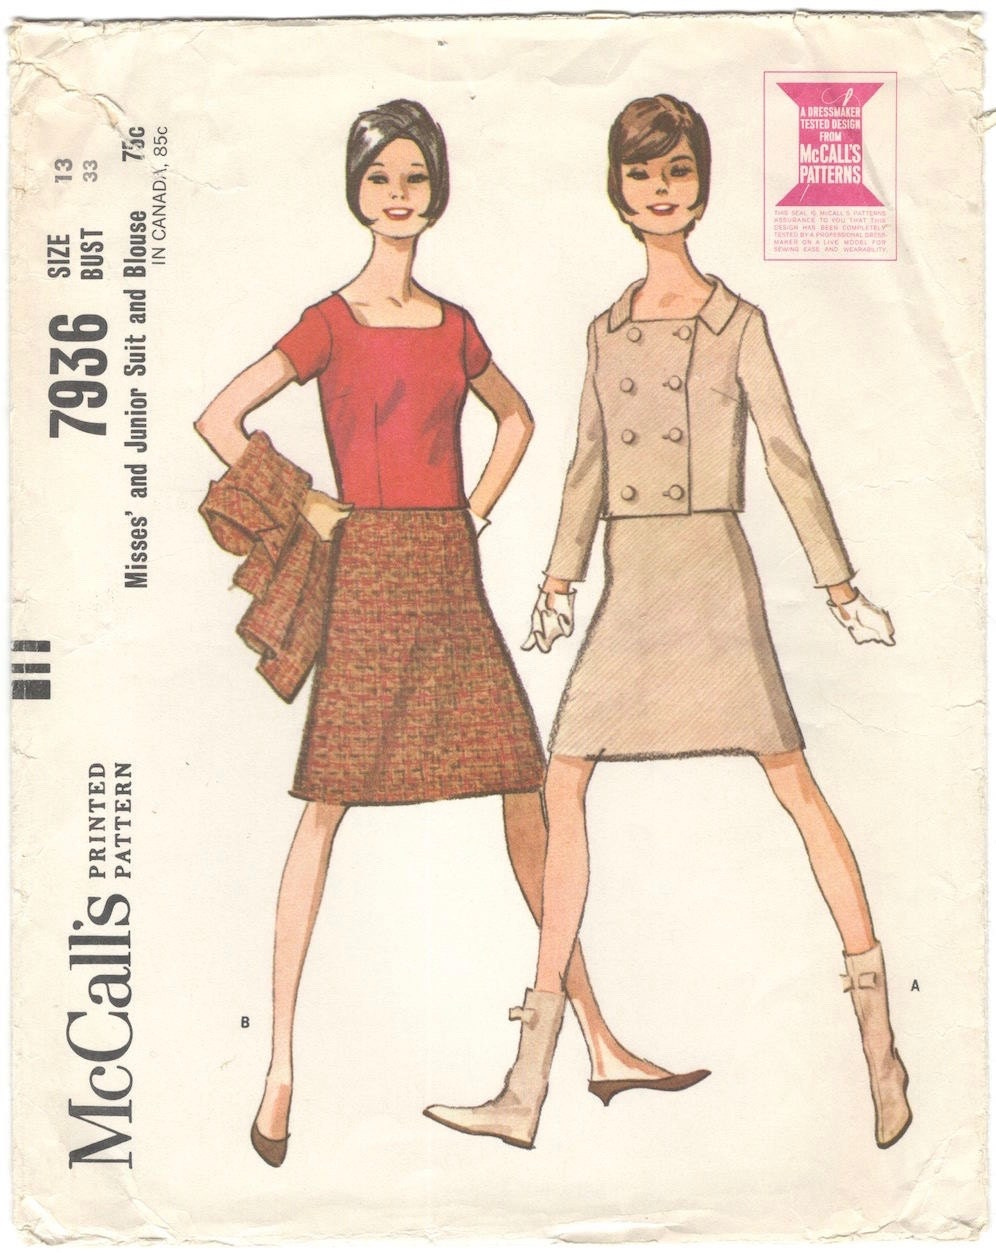 1960s skirt suit and blouse pattern after Courrèges - McCall's 7936